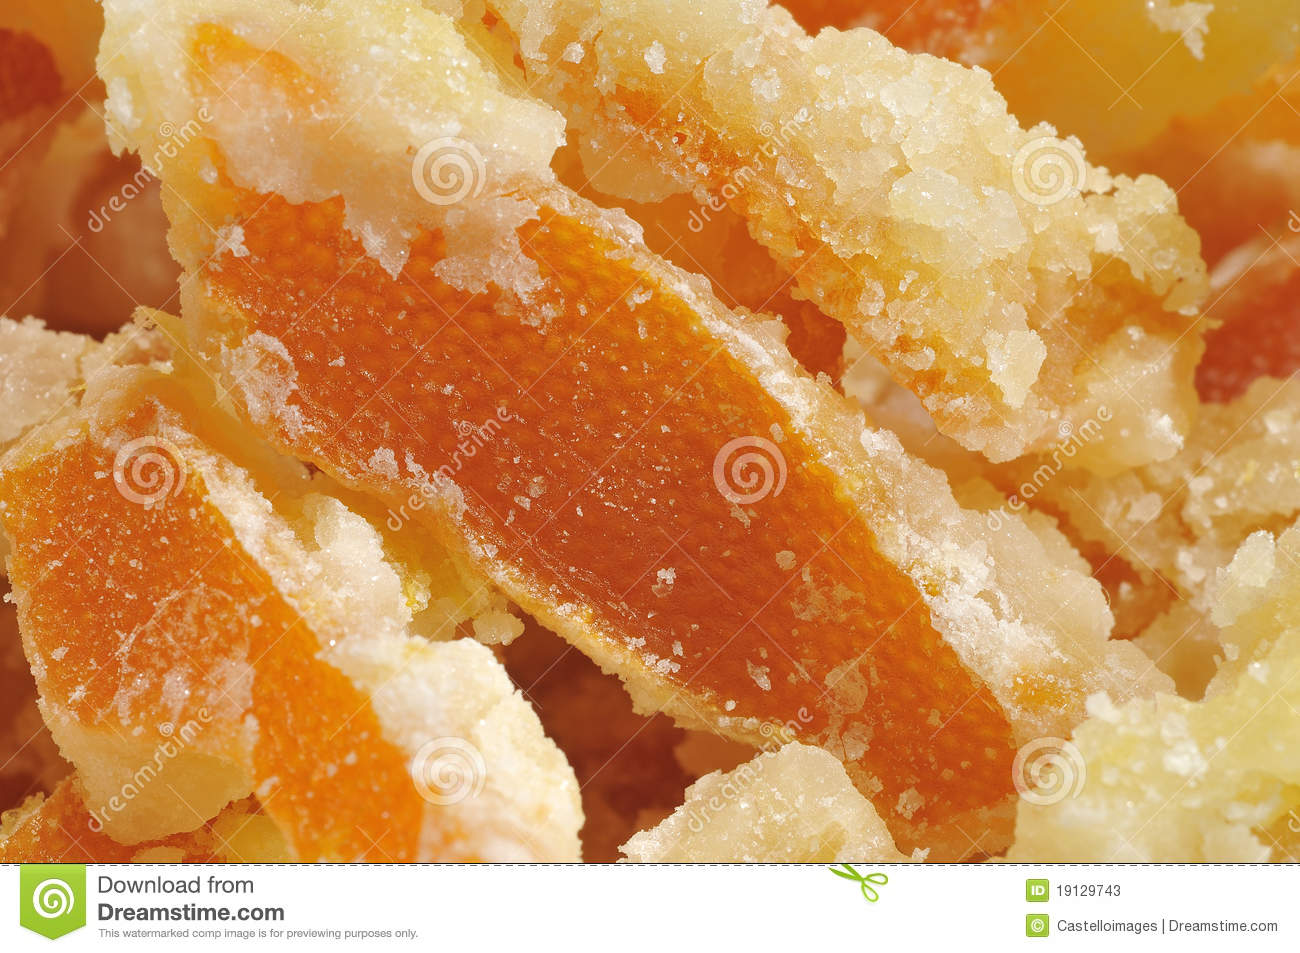 Homemade candied orange peel pieces with crystalline sugar.